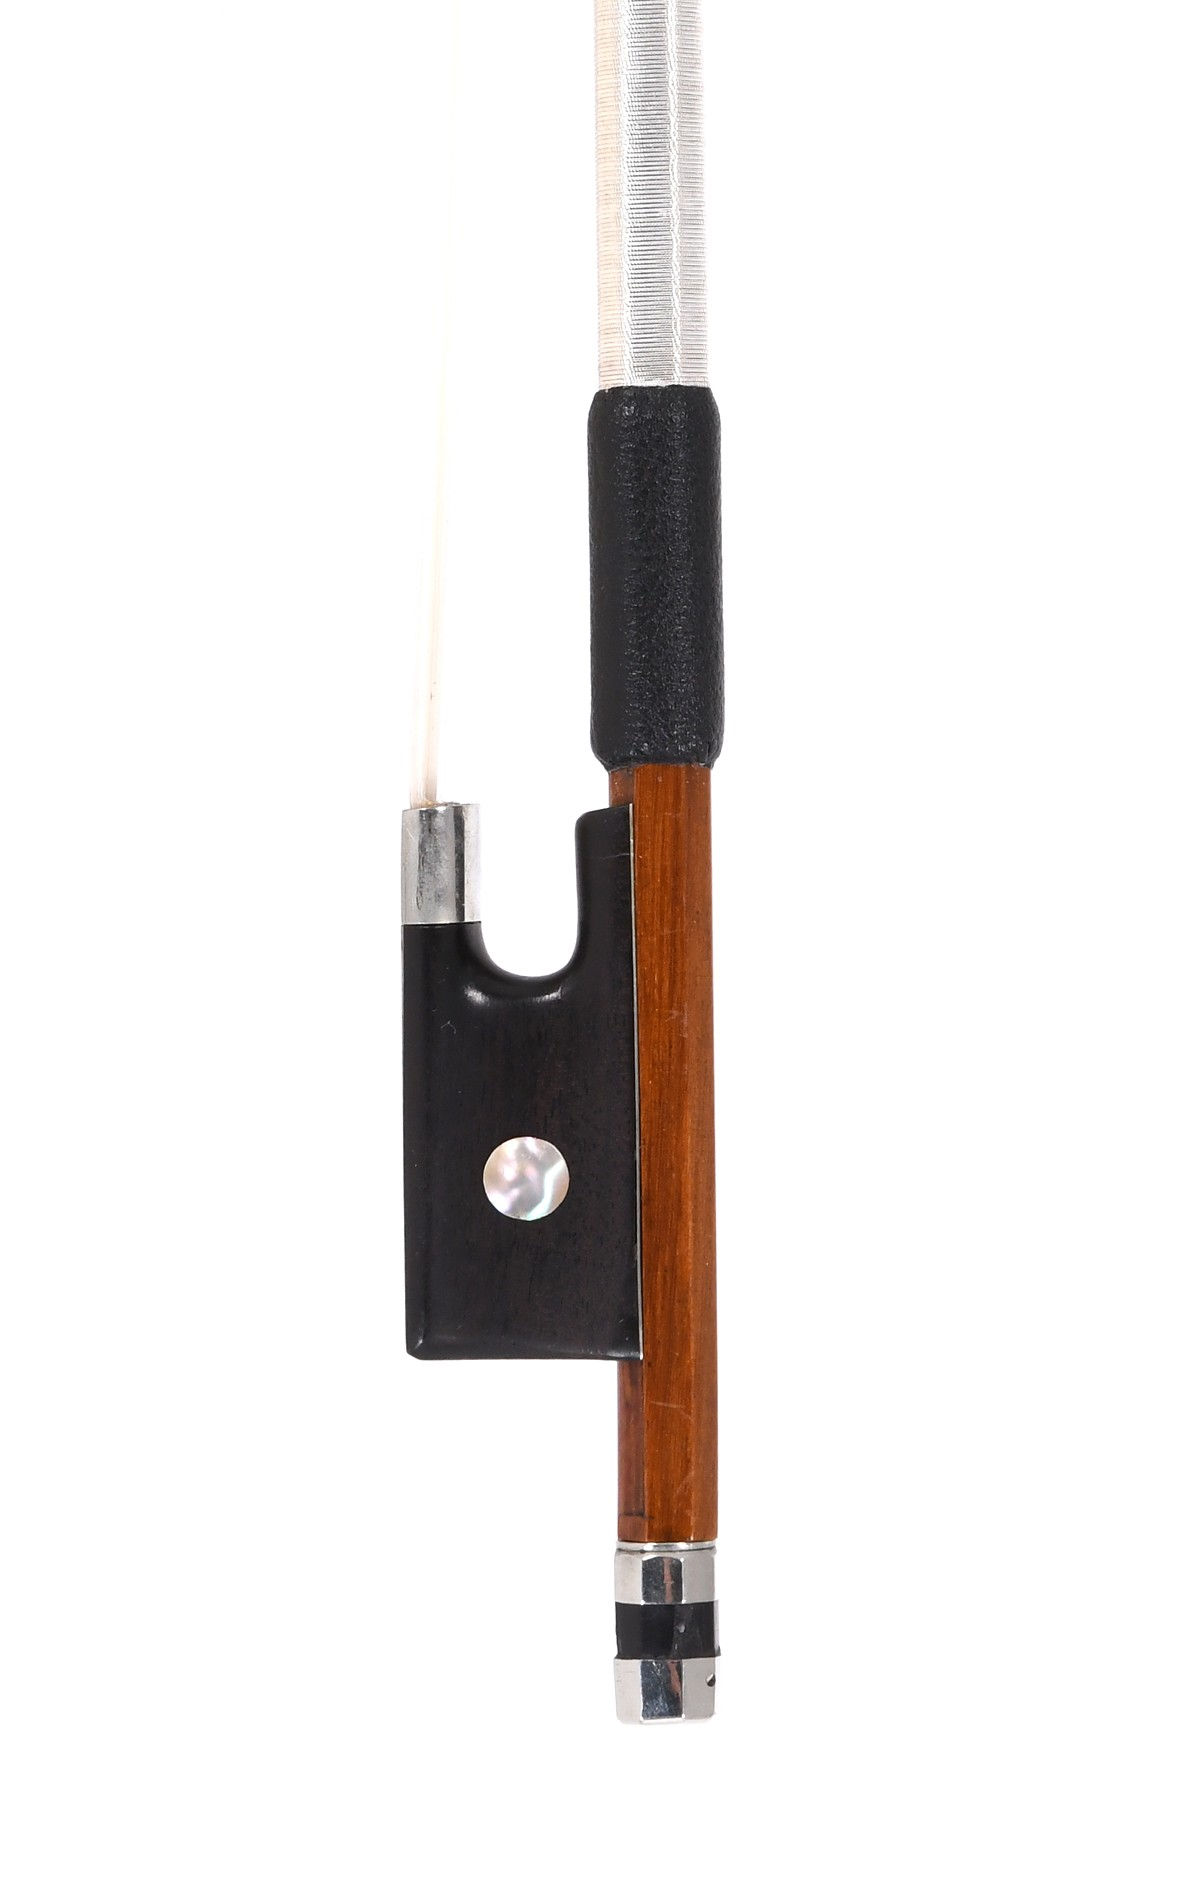 Eugene Cuniot-Hury violin bow